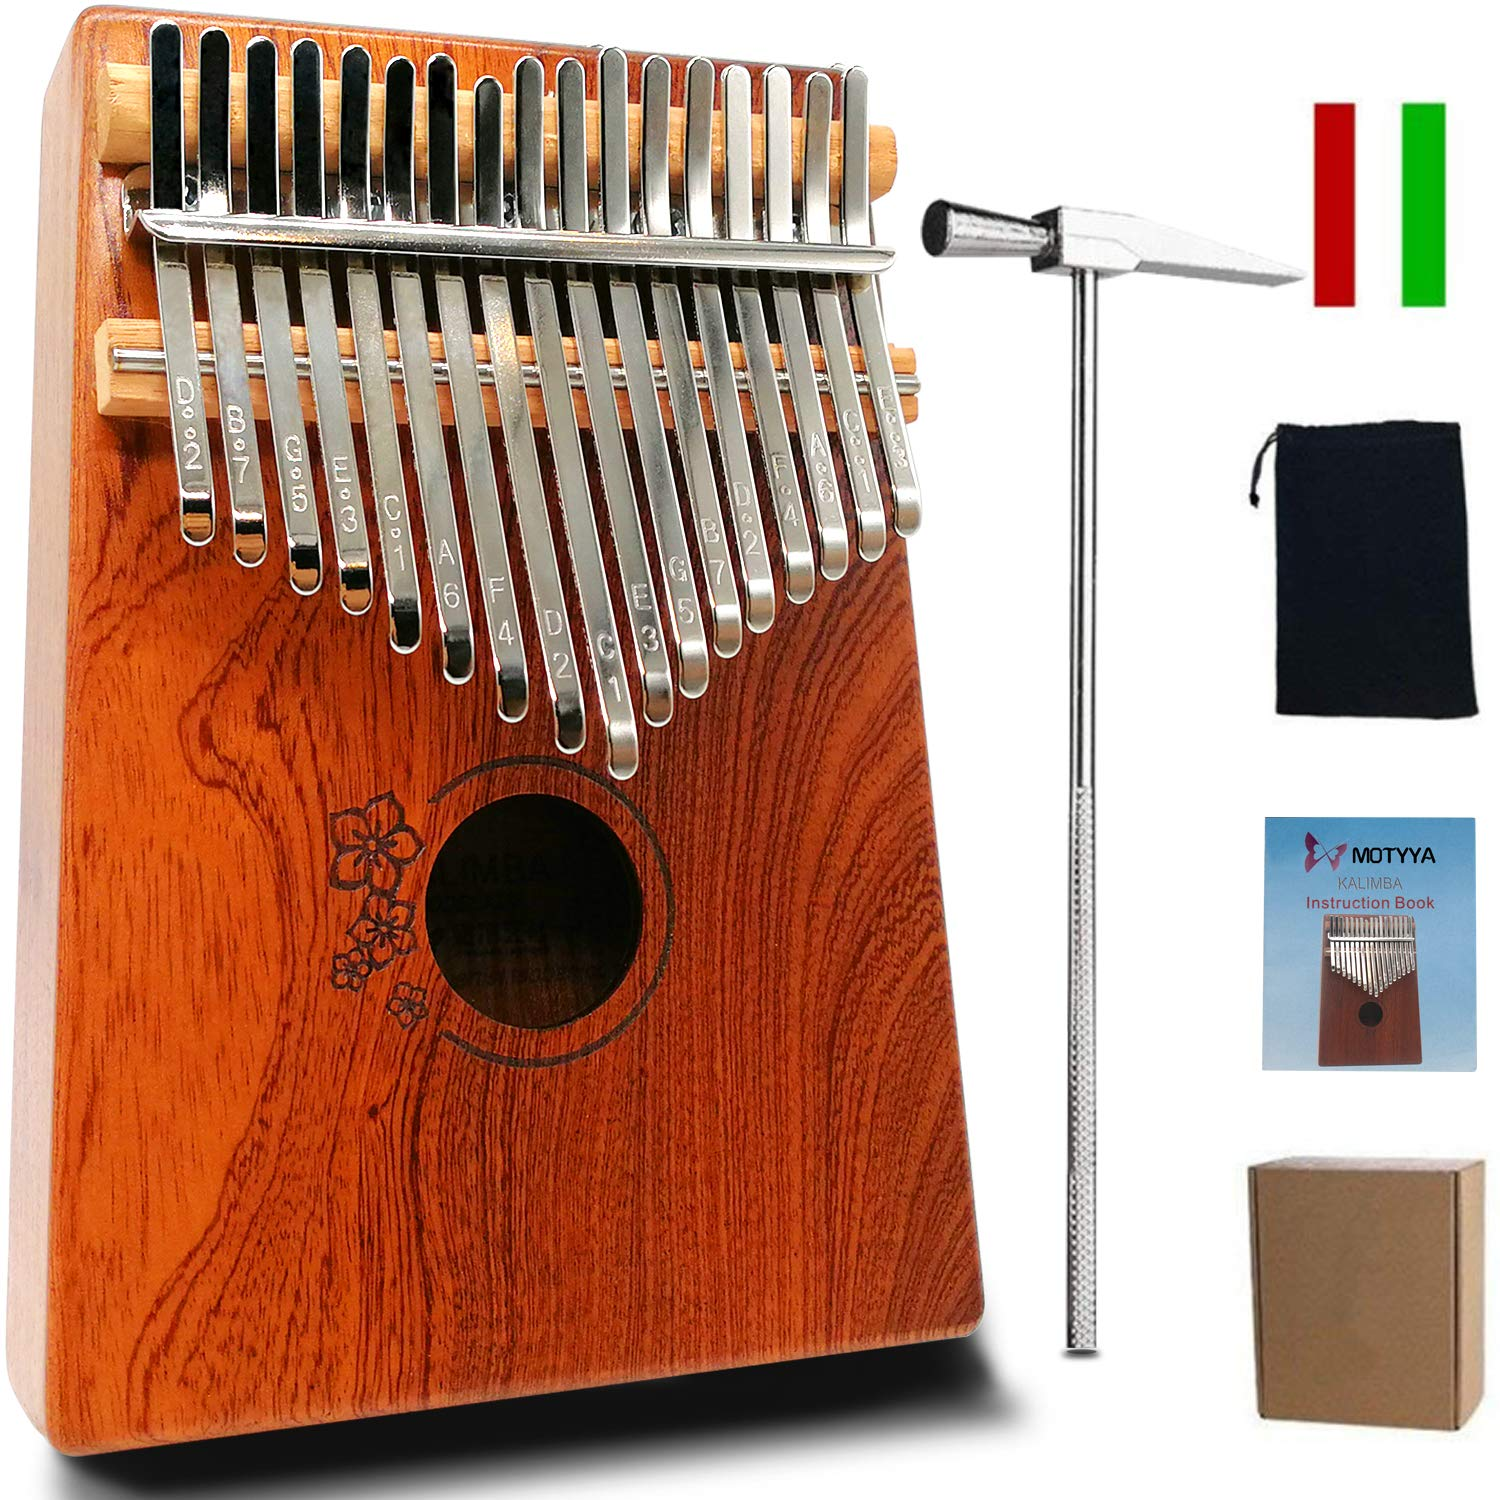 MOTYYA Kalimba 17 Key Thumb piano, Mbira 17 Tone Finger Piano Portable Musical instrument Toys Solid Sapele Body with Tune Hammer/Bag Musical Gifts(Sapele Flower Wood Color)